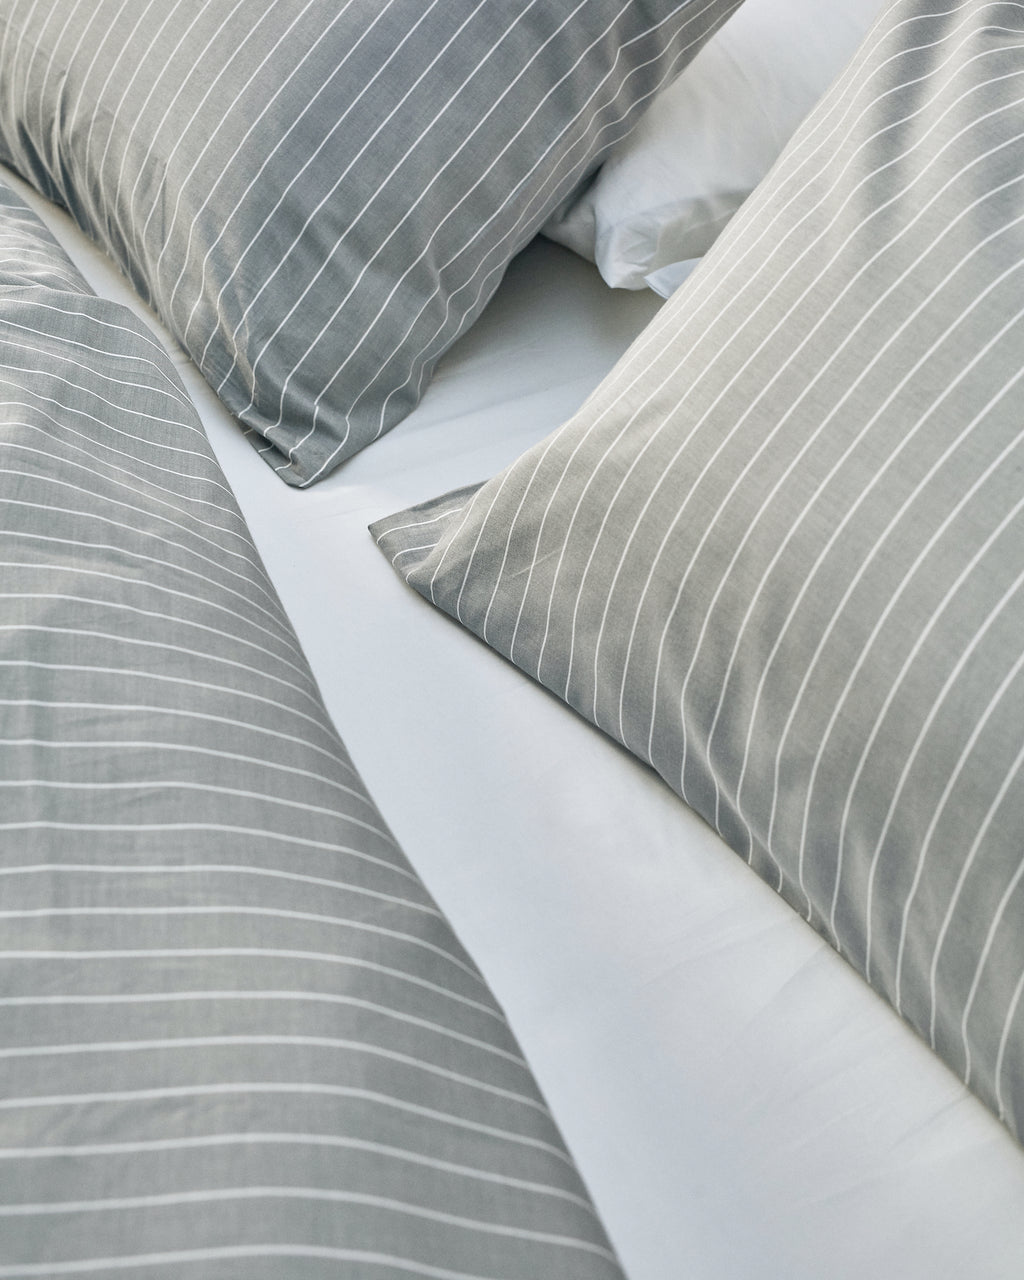 grey and white striped cotton bedding texture